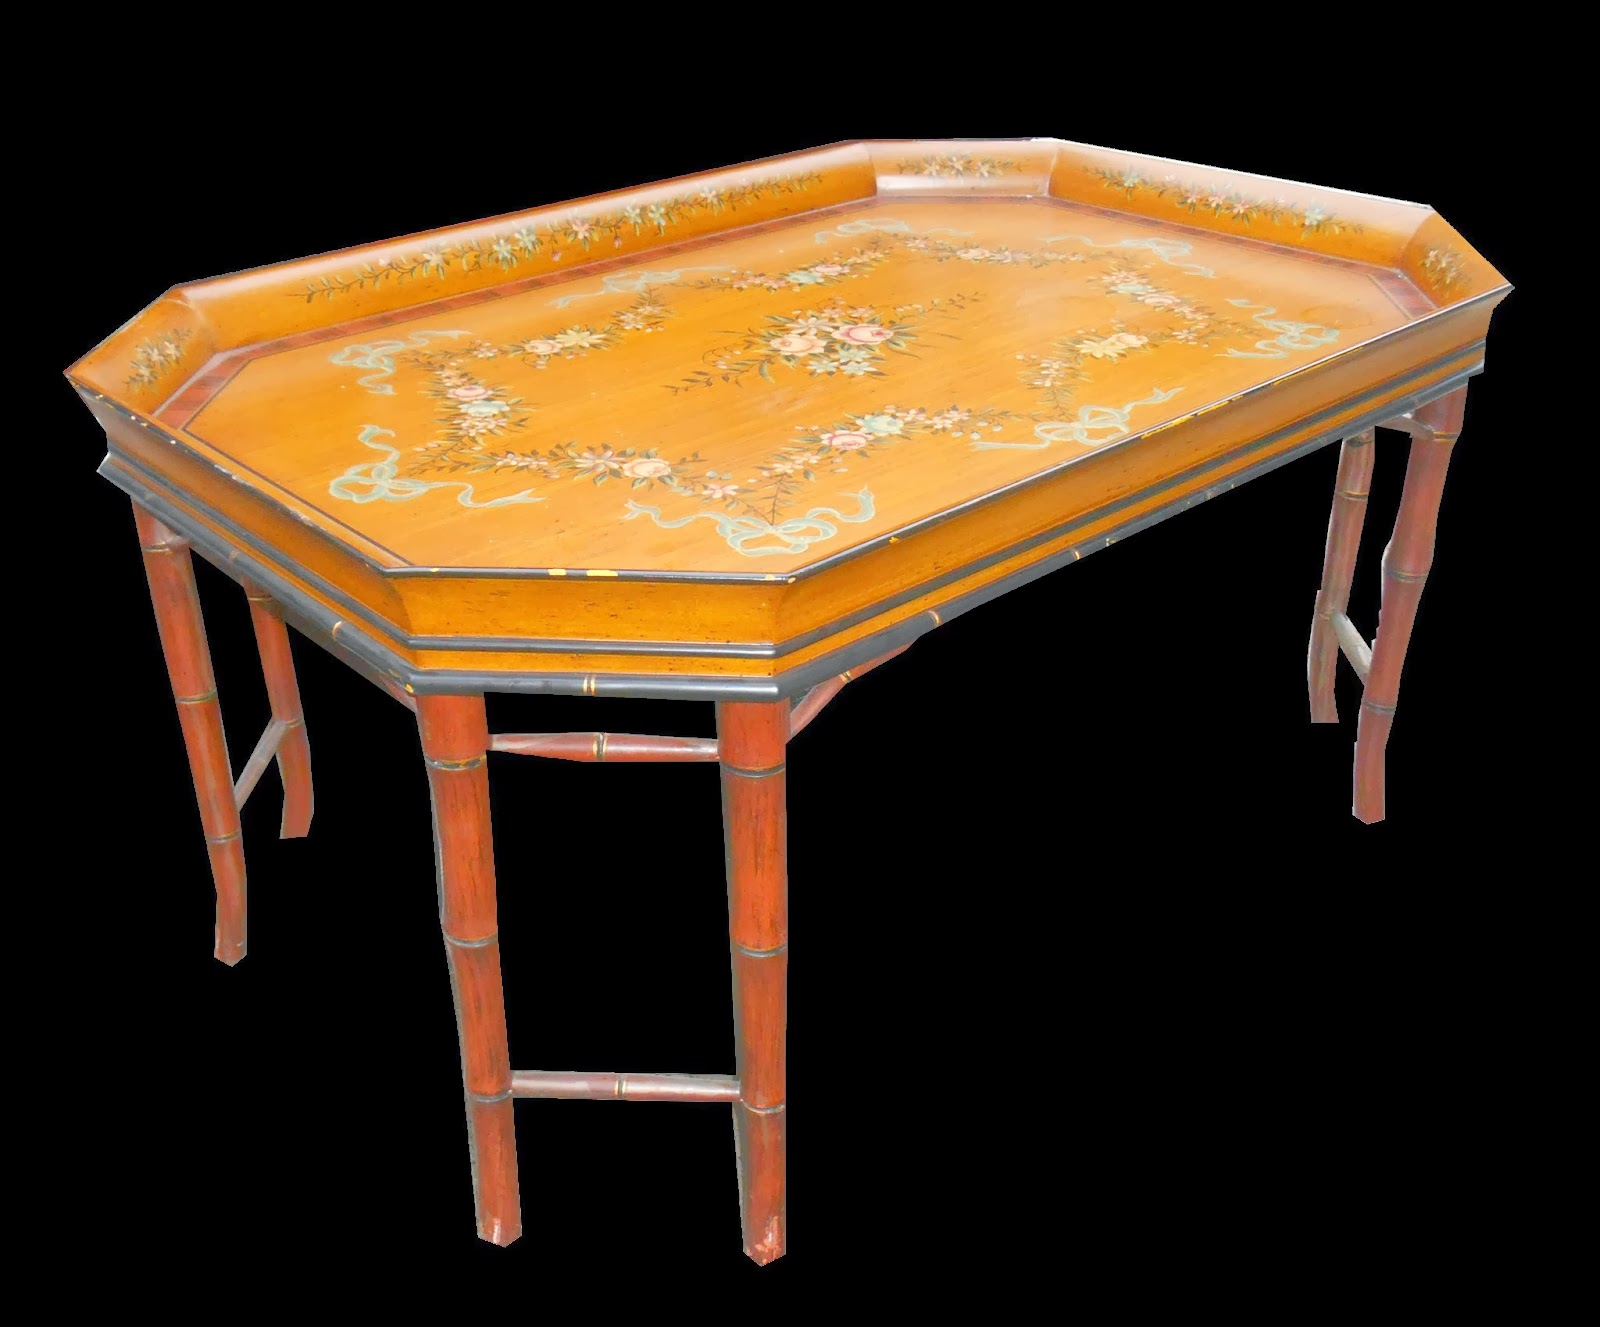 Uhuru Furniture Collectibles Painted Faux Bamboo Coffee Table Sold